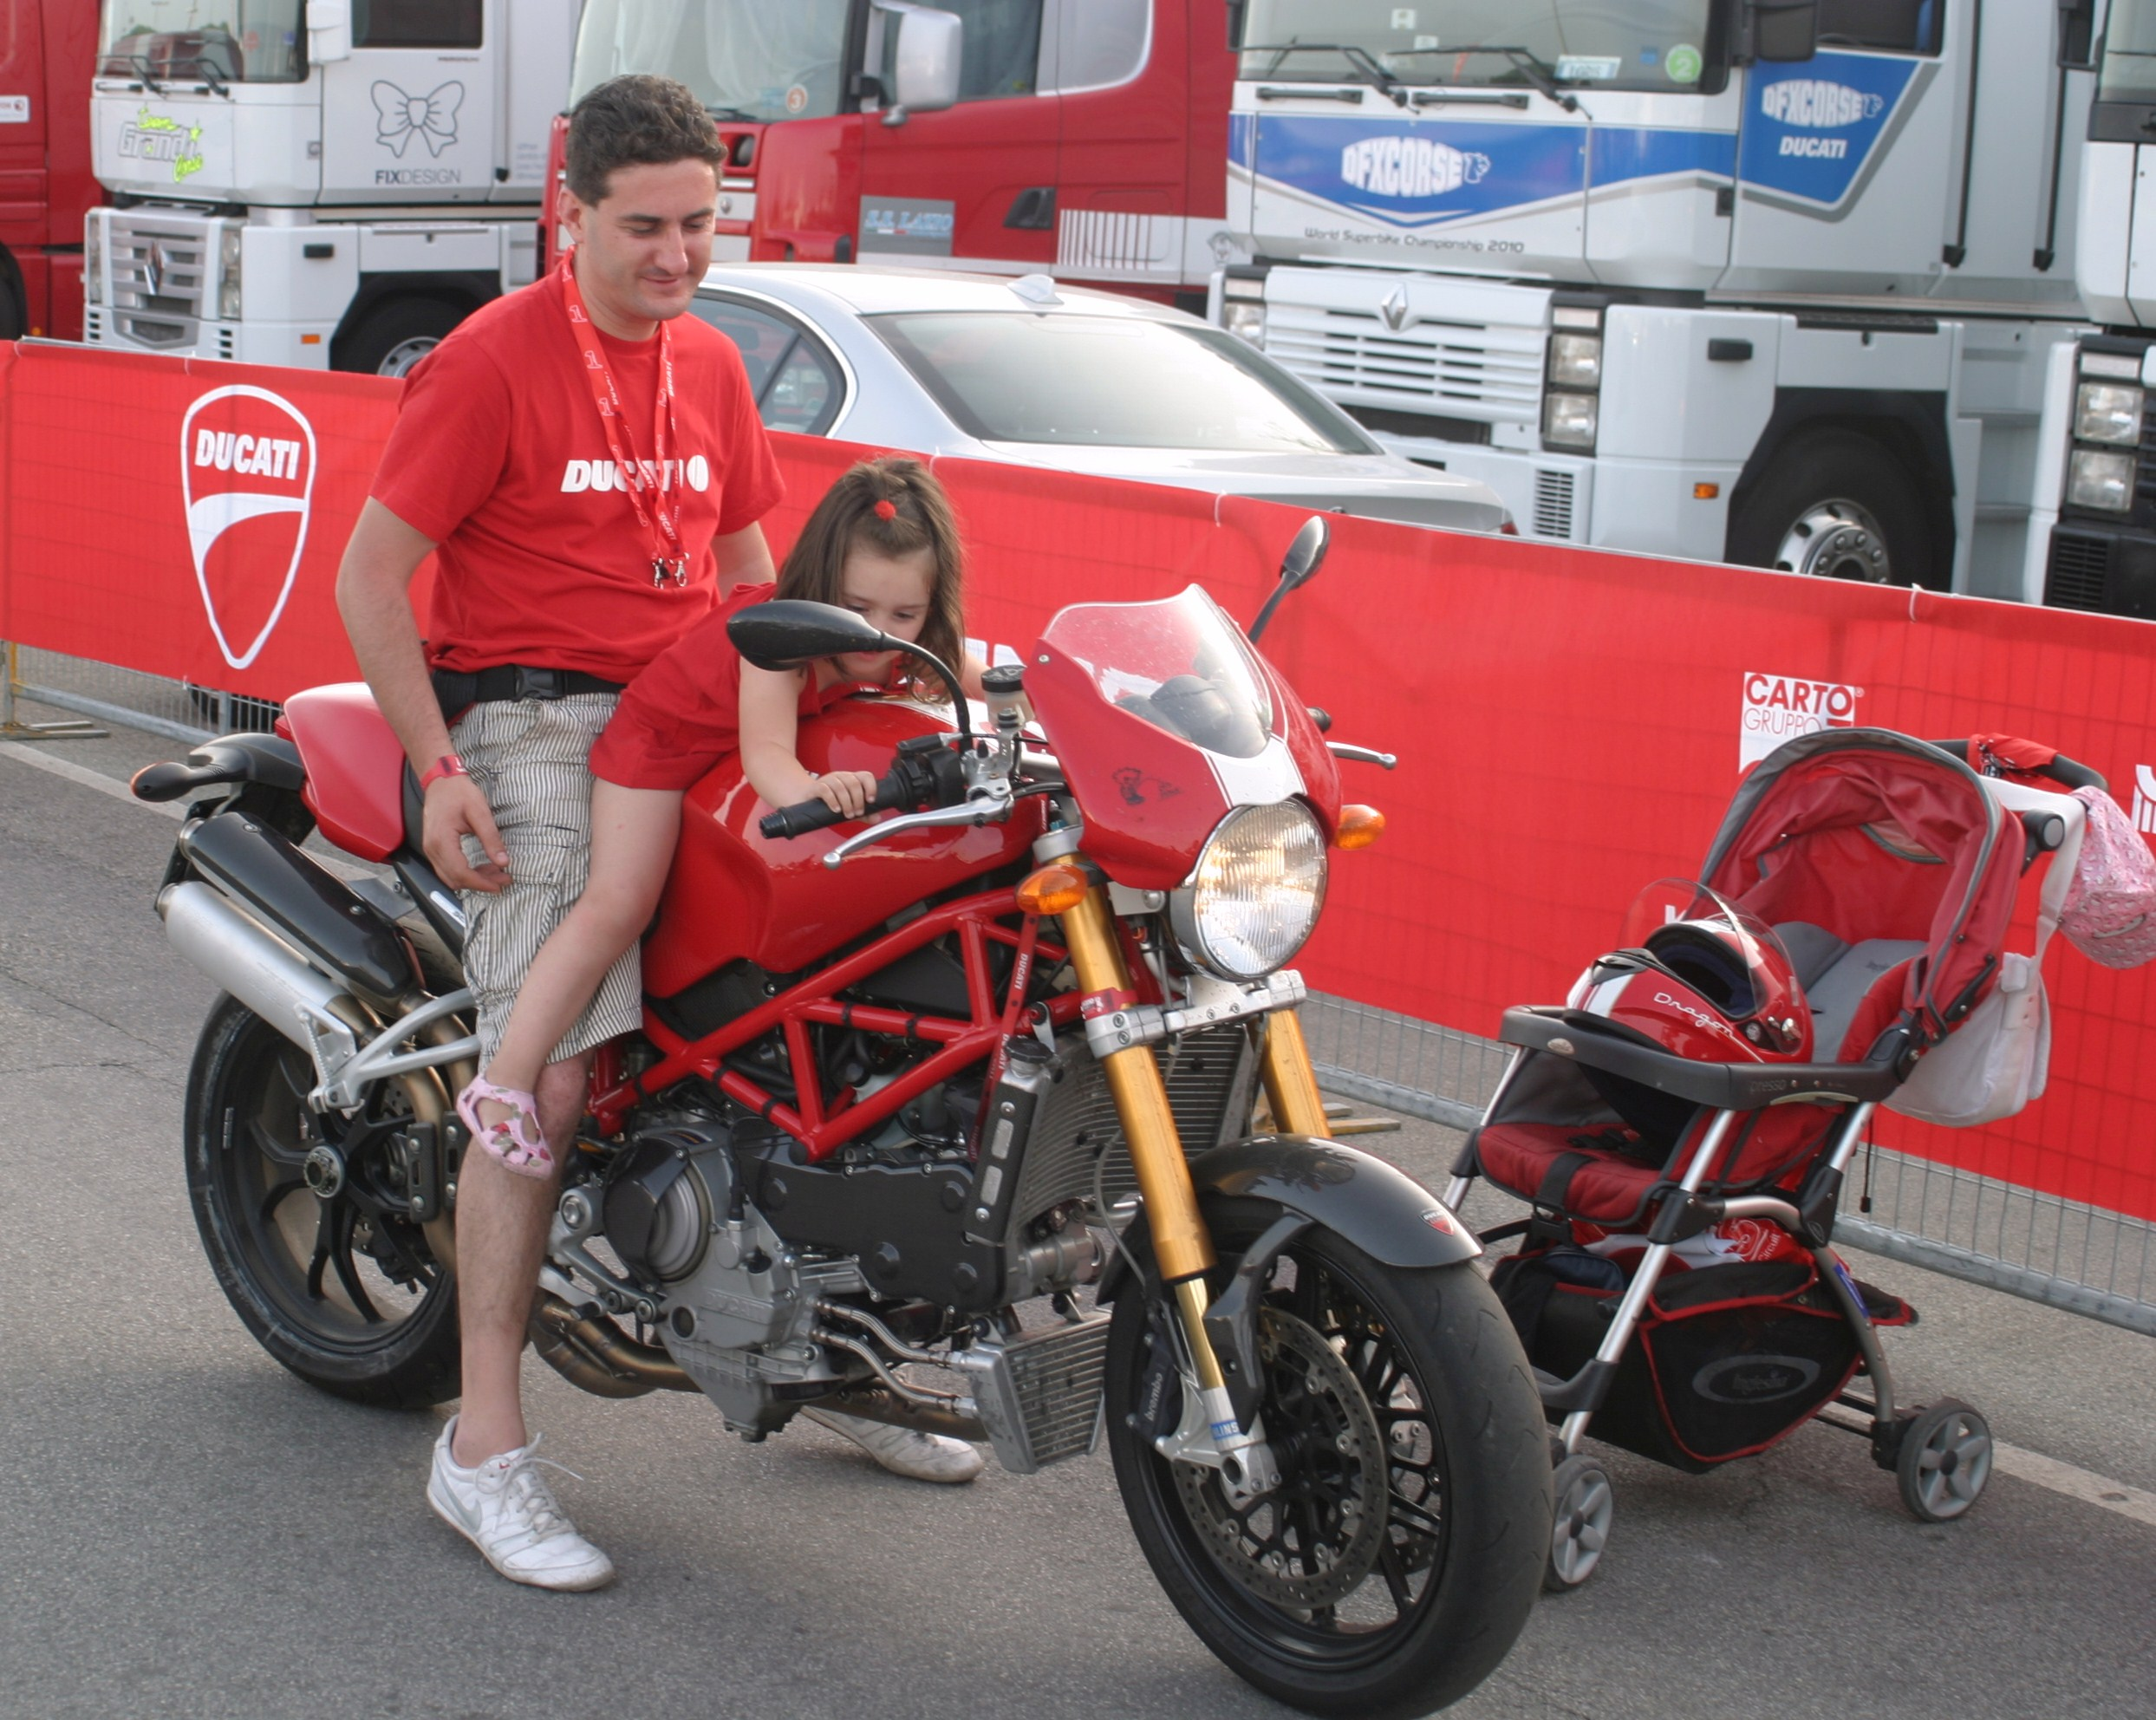 Ducati indoctrination starts at an early age in Italy